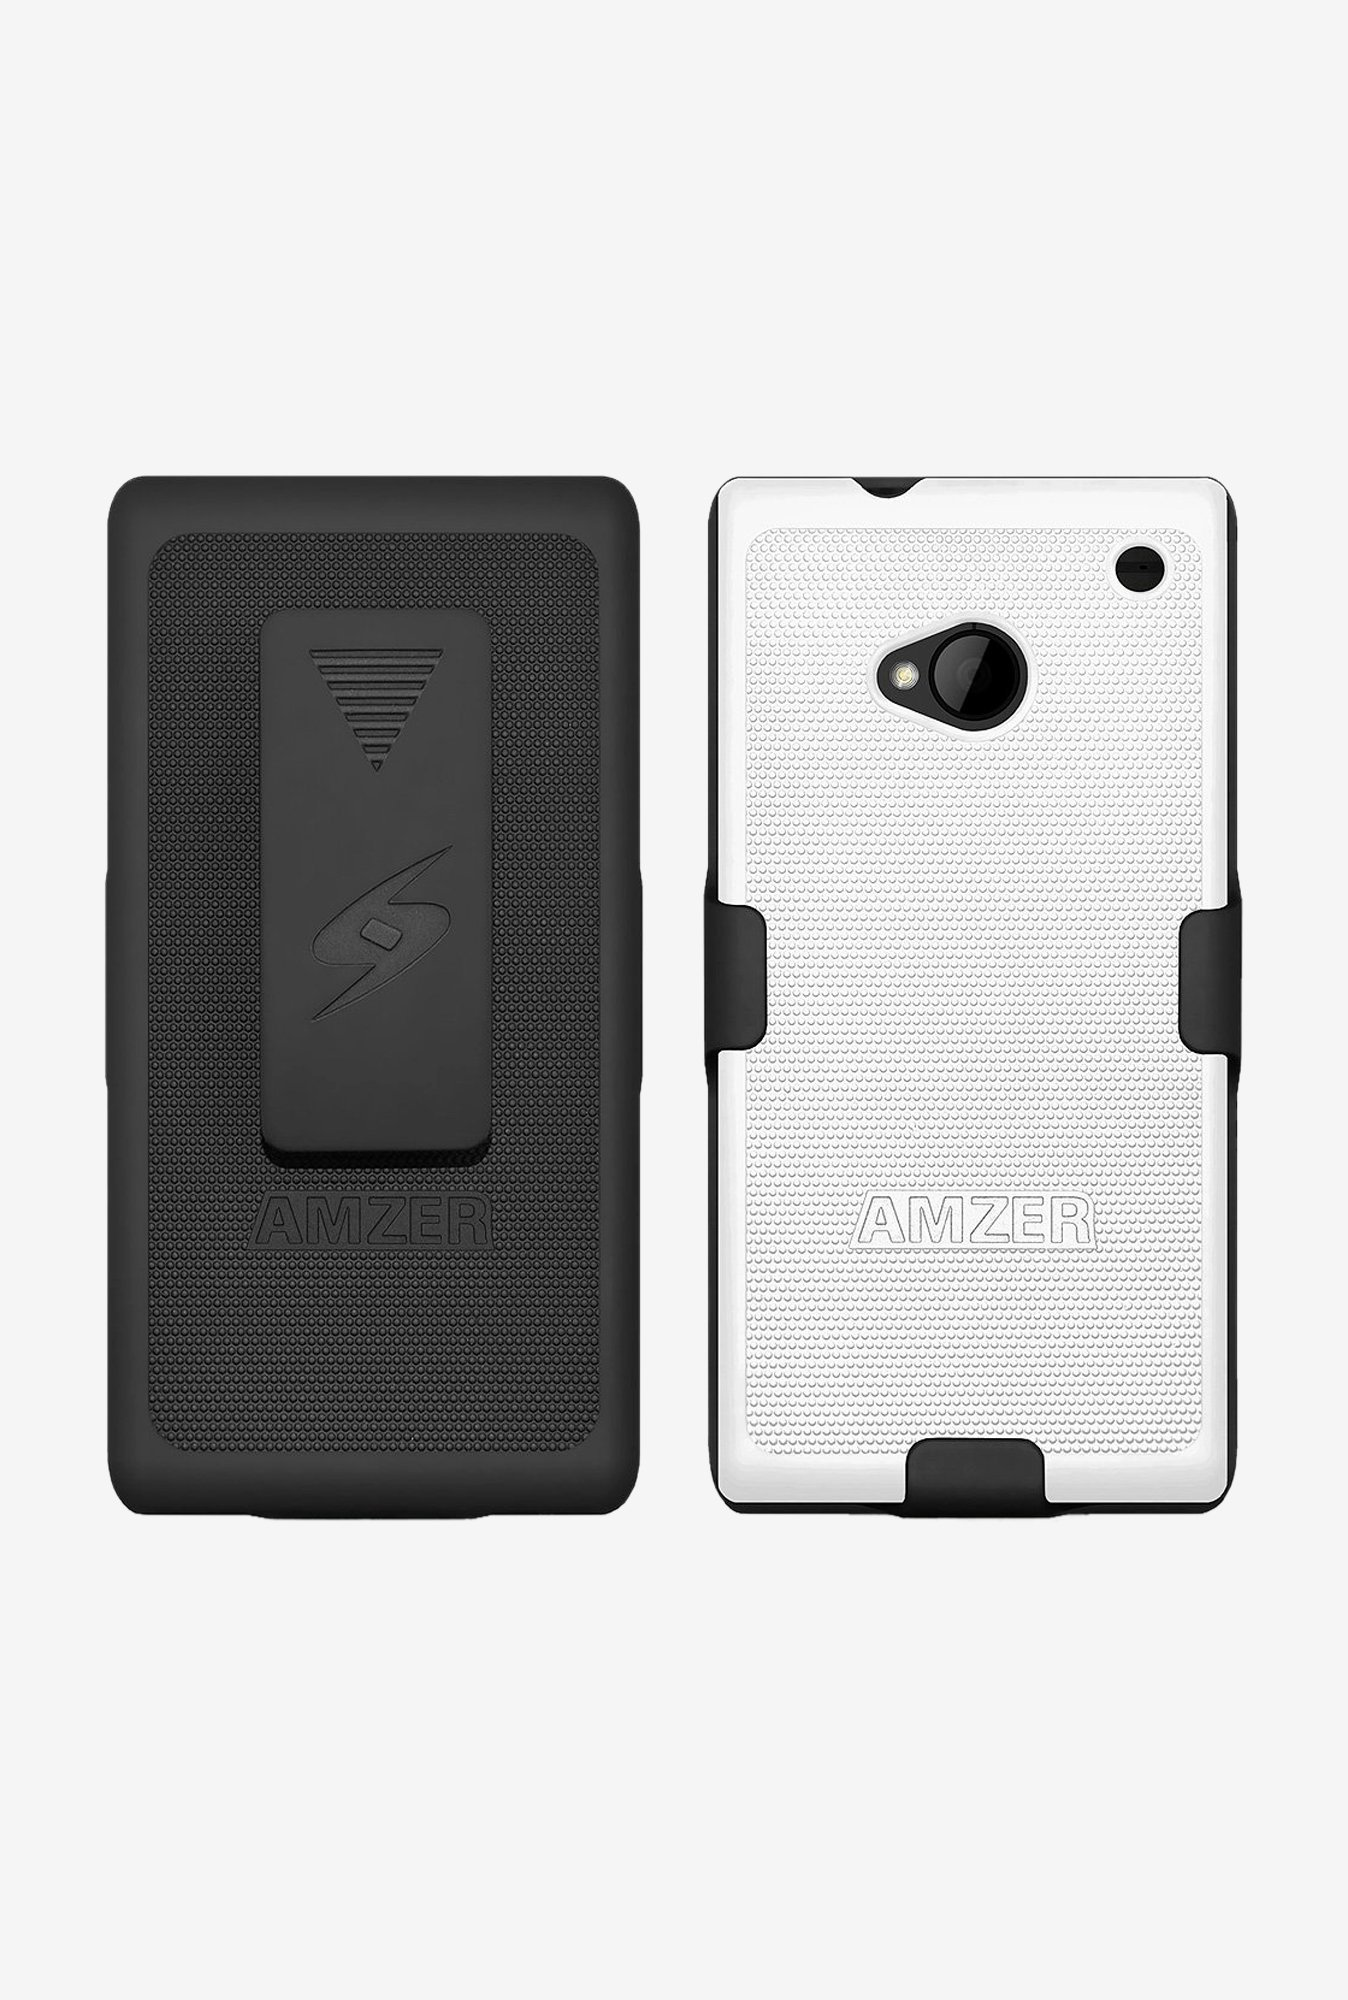 Amzer Shellster Shell Case Black & White for HTC One M7